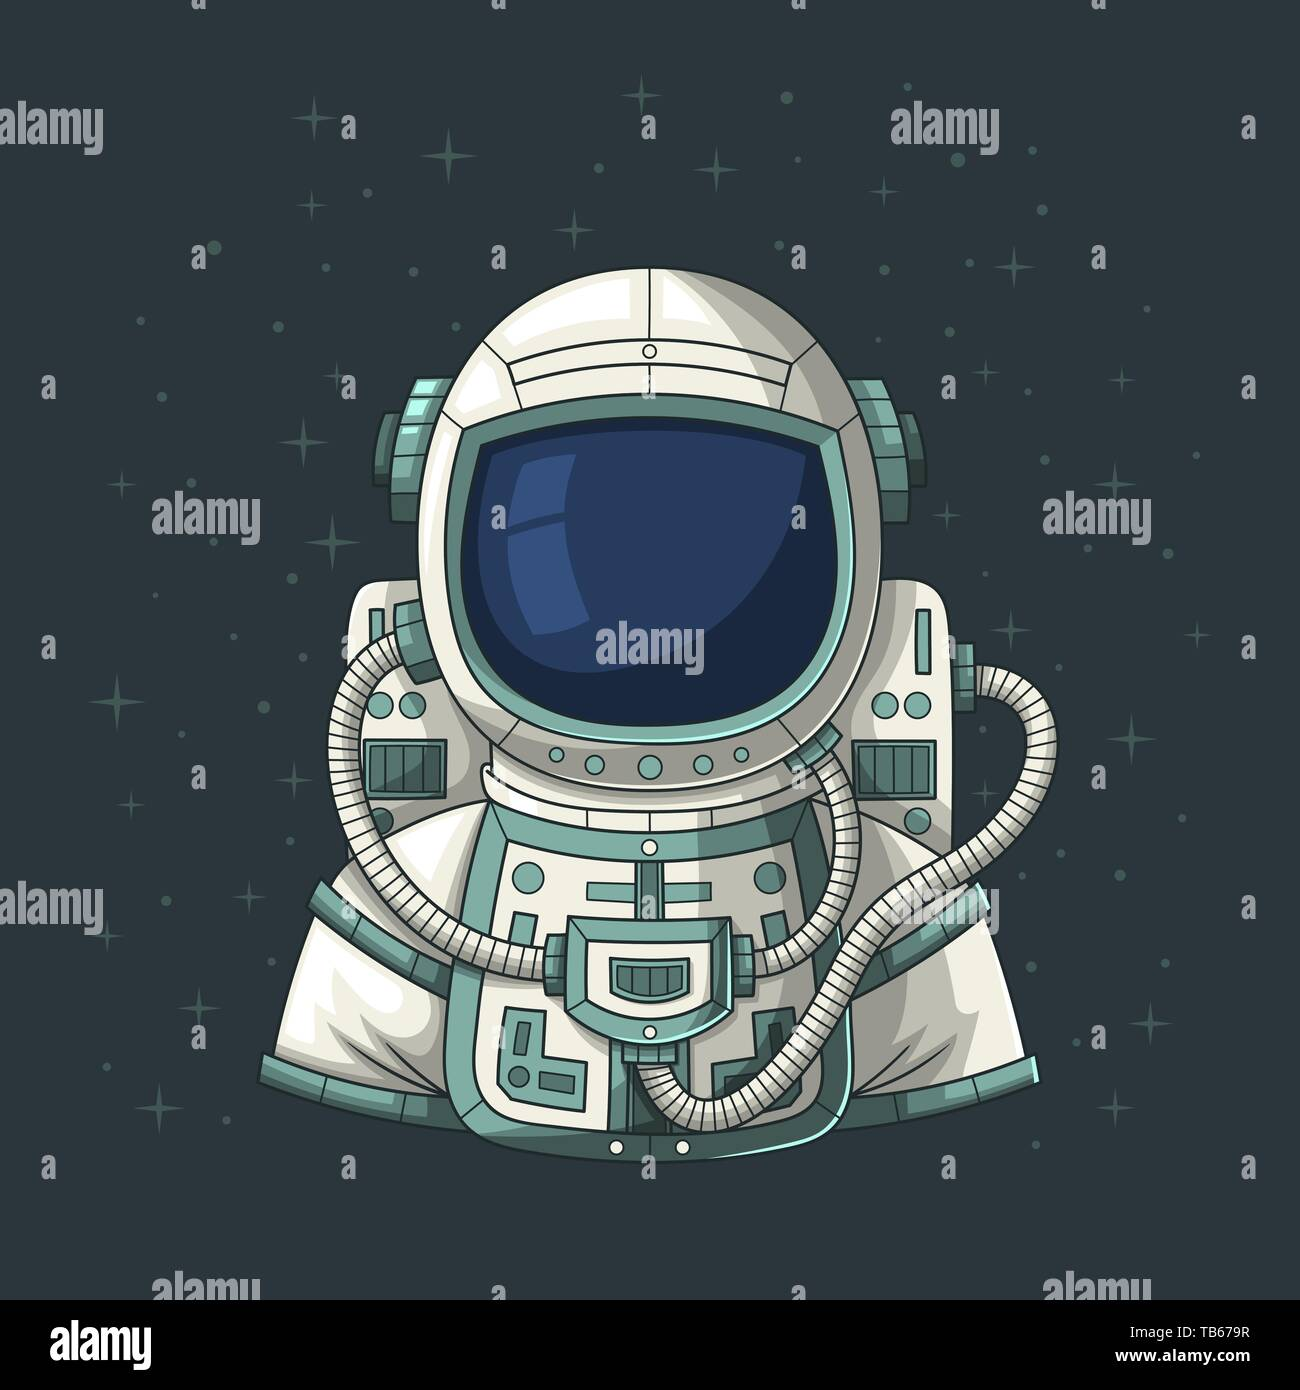 Astronaut or cosmonaut in space, Hand drawn vector illustration.  - Stock Image